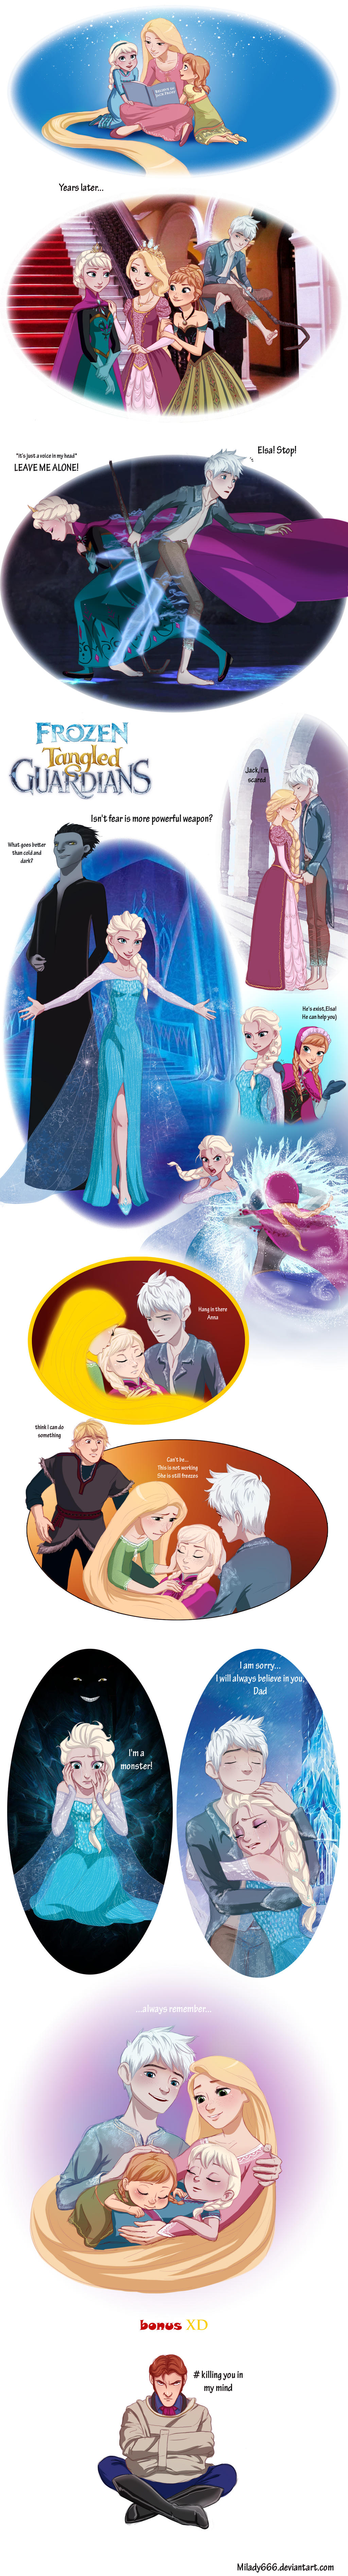 http://fc03.deviantart.net/fs71/i/2013/268/7/a/frozen_tangled_guardians_alternative_story_by_milady666-d6nvjn0.jpg